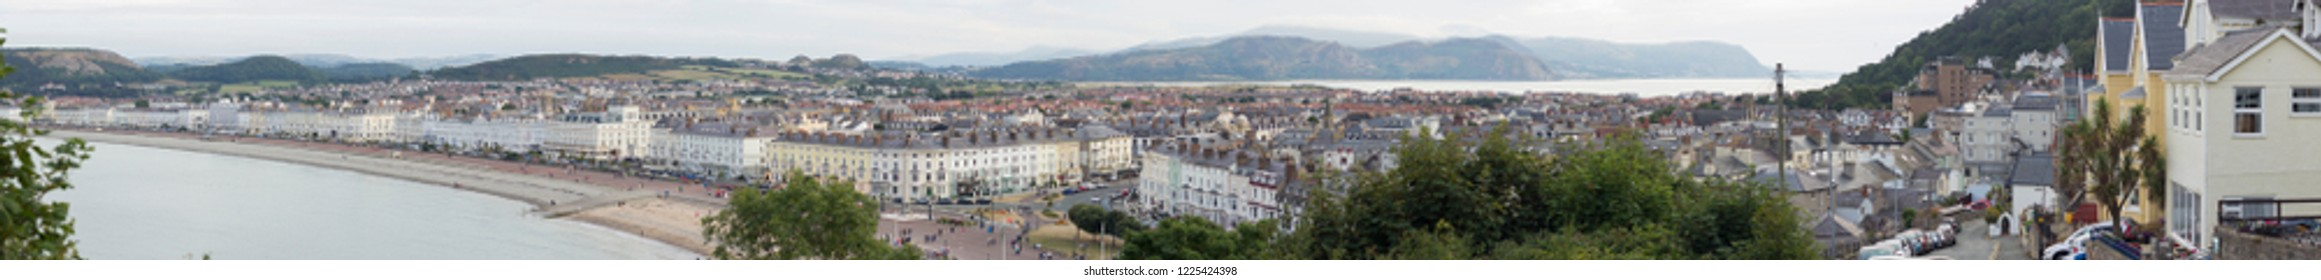 Super high resolution extra wide panorama of a lovely town in North Wales, UK - Llandudno